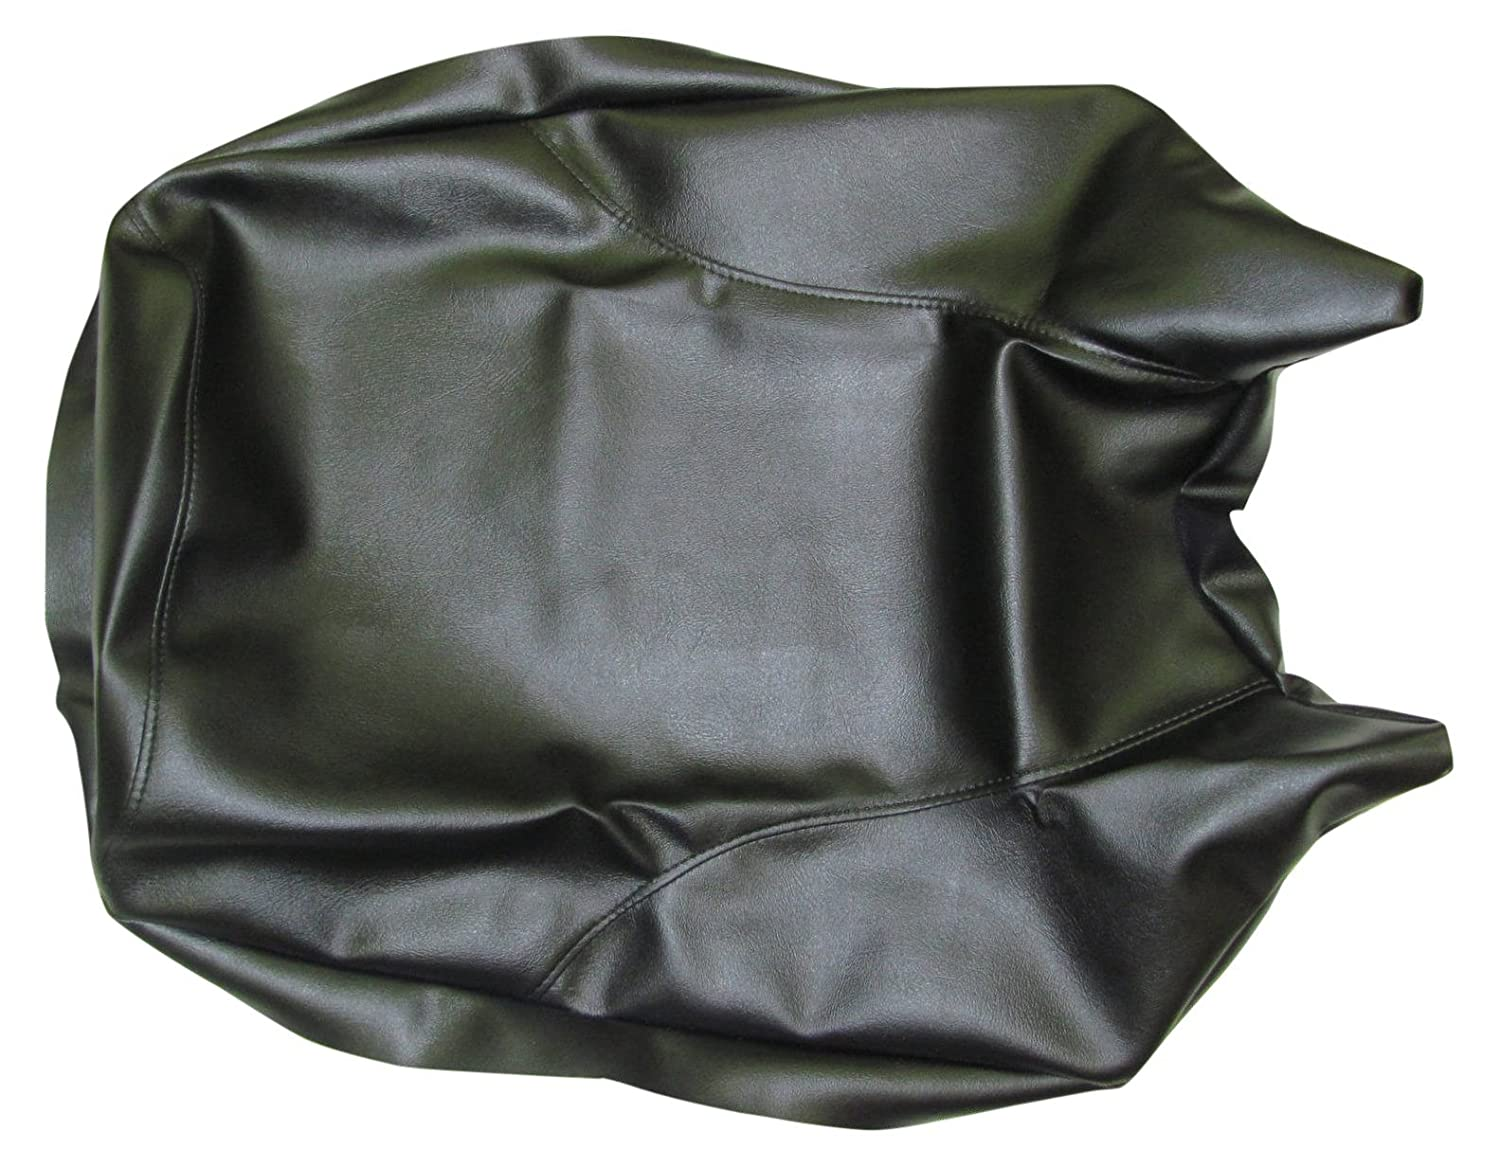 Freedom County ATV FC129 Black Replacement Seat Cover for Kawasaki KXT250 Tecate 84-85